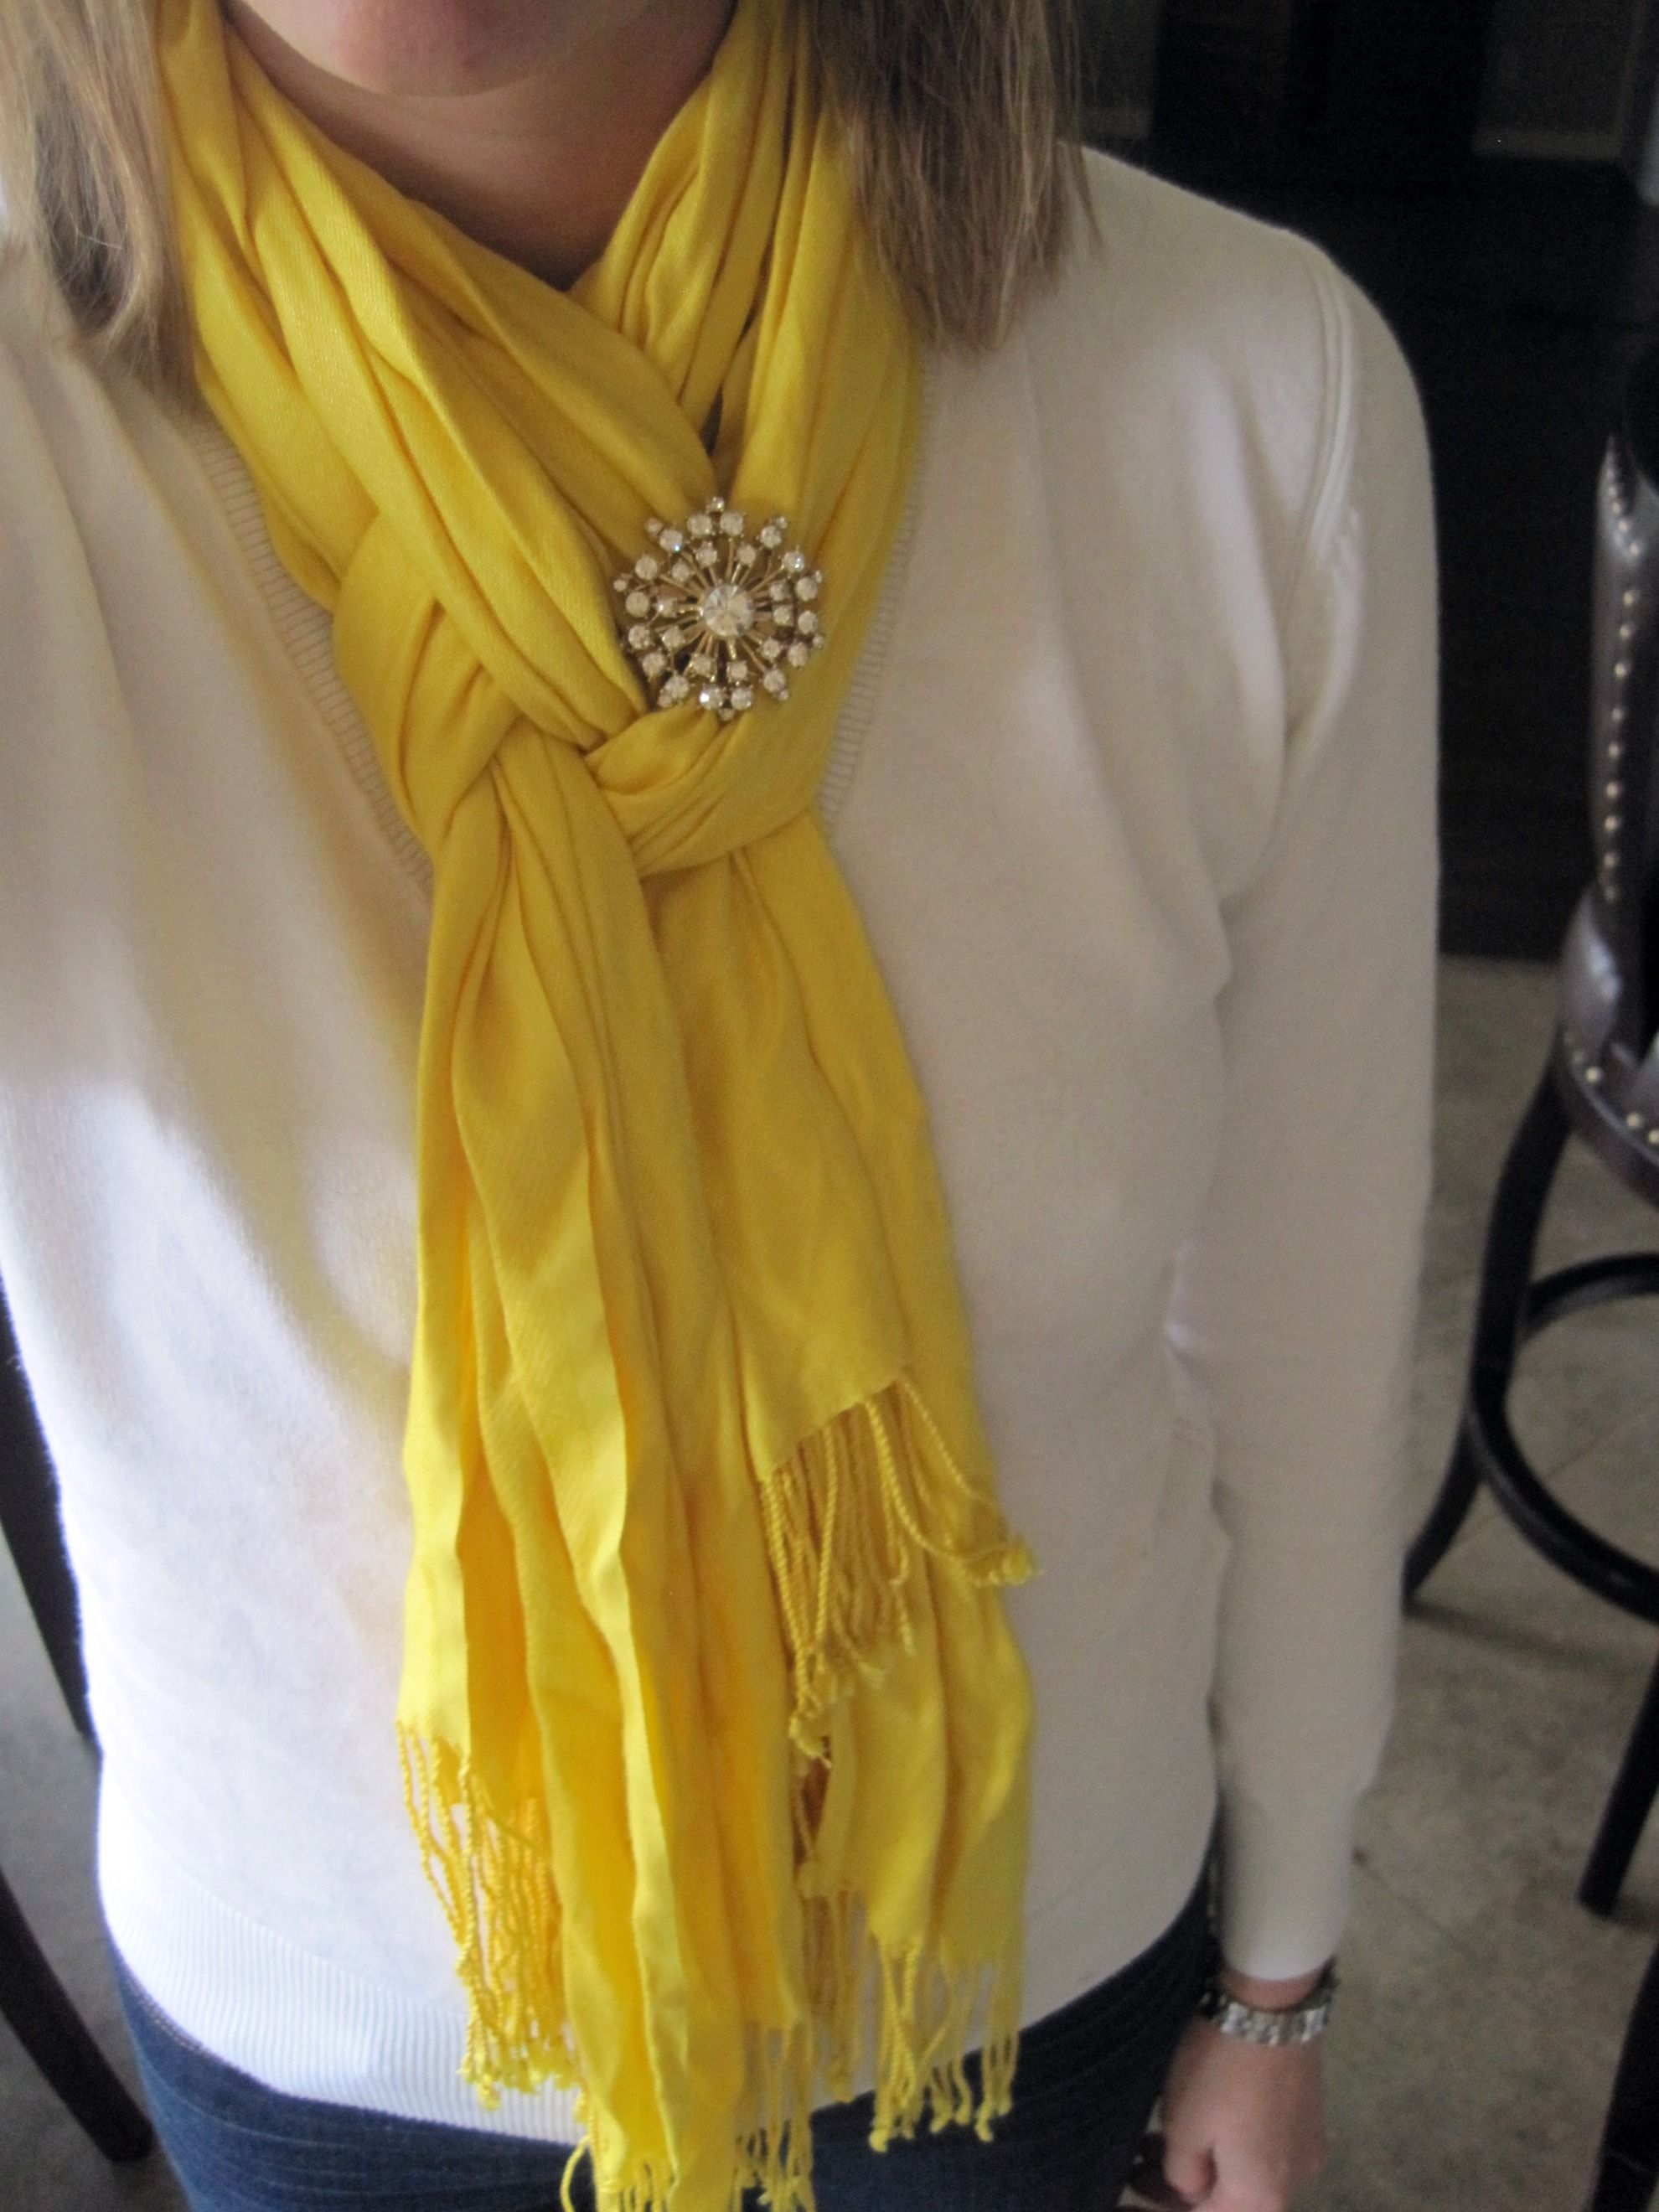 Fold scarf in half. Loop around neck. Pull only one strand of the scarf through the loop. Twist loop, then pull other strand through. Leave as is, or adorn with a brooch.